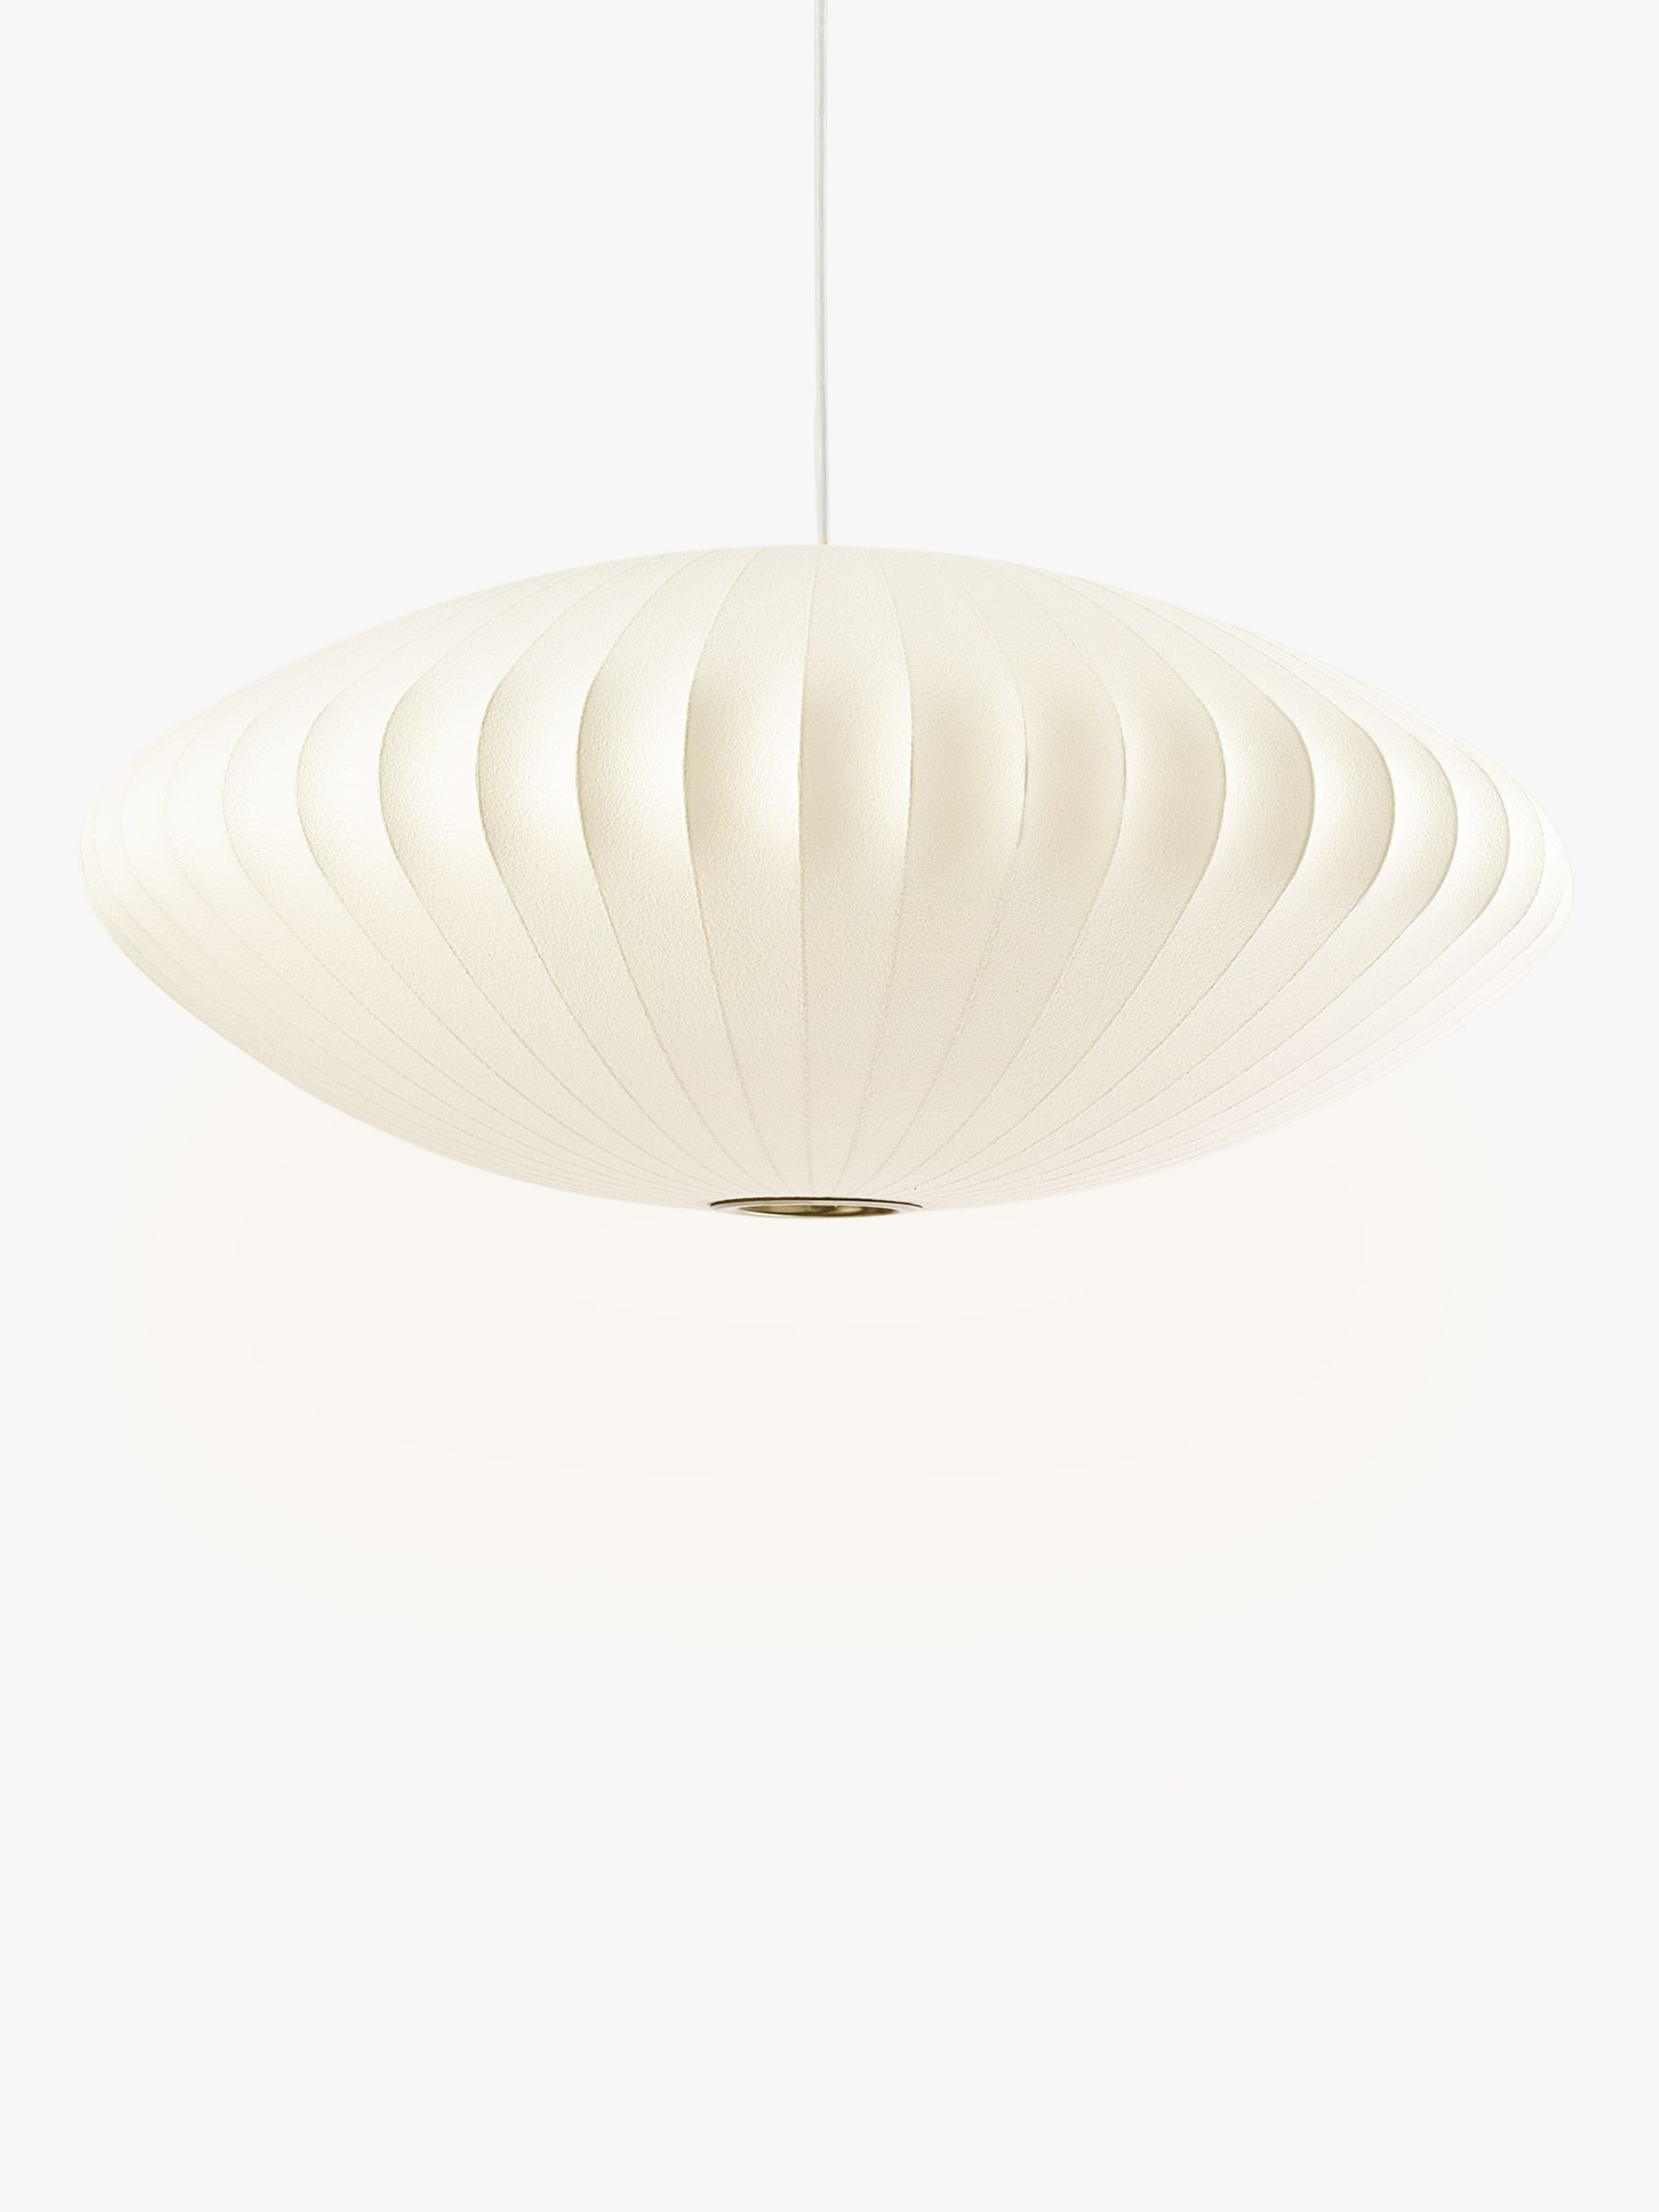 Herman Miller Herman Miller Bubble Saucer Ceiling Light, Large